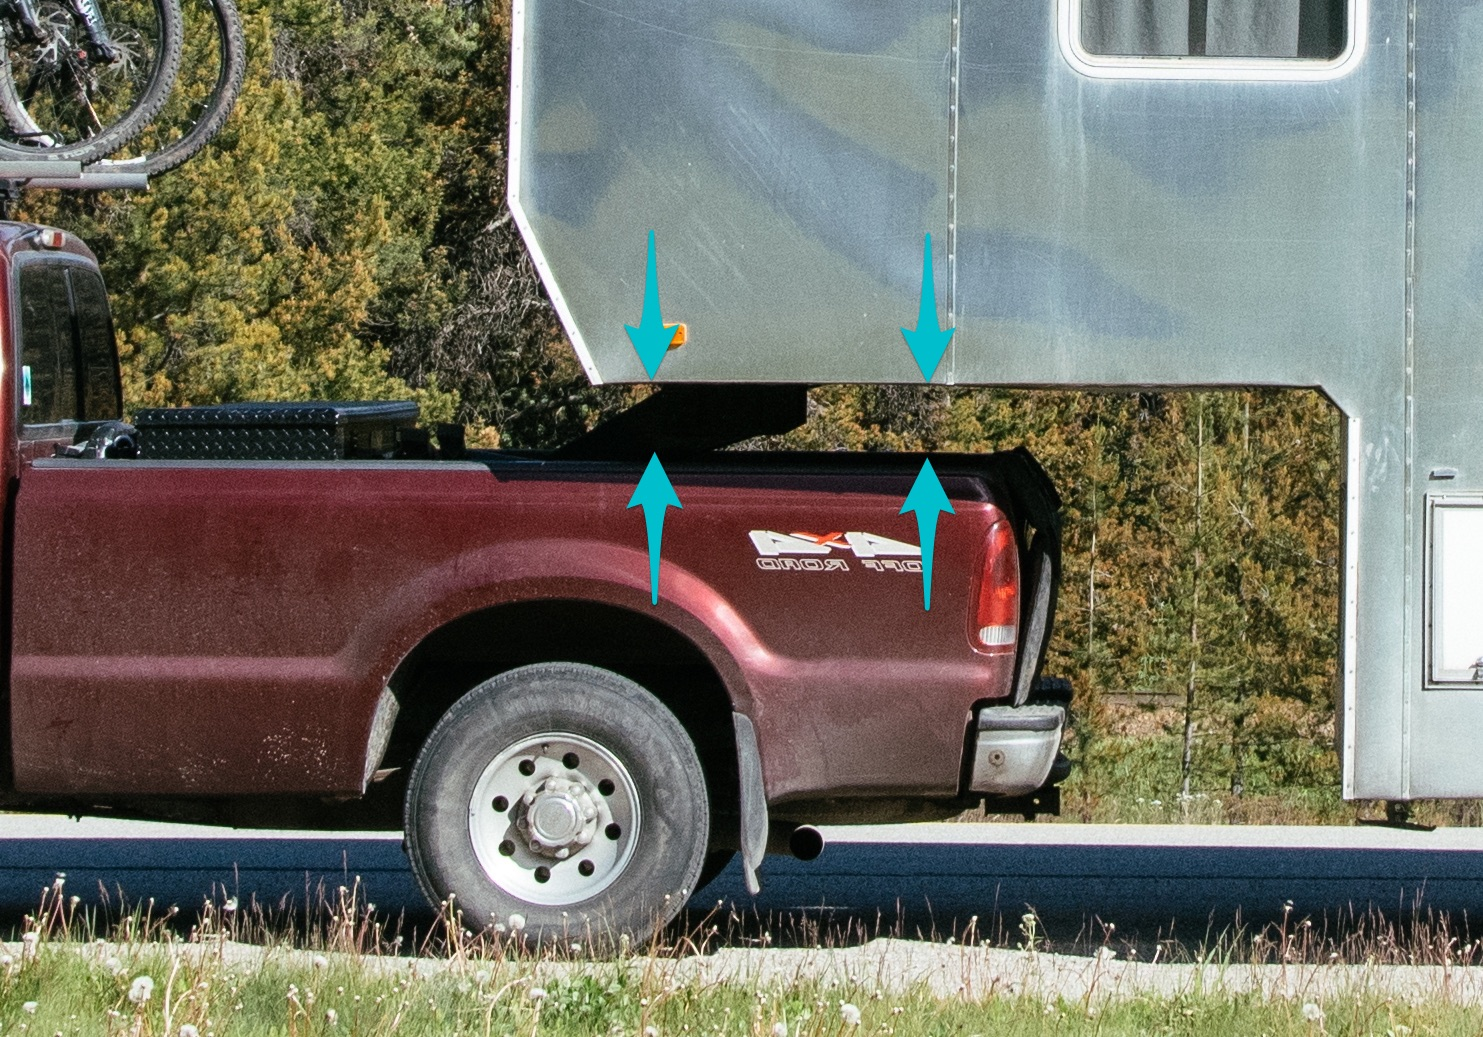 Hard to see because of the shadows: Arrows show the bedrail clearance.